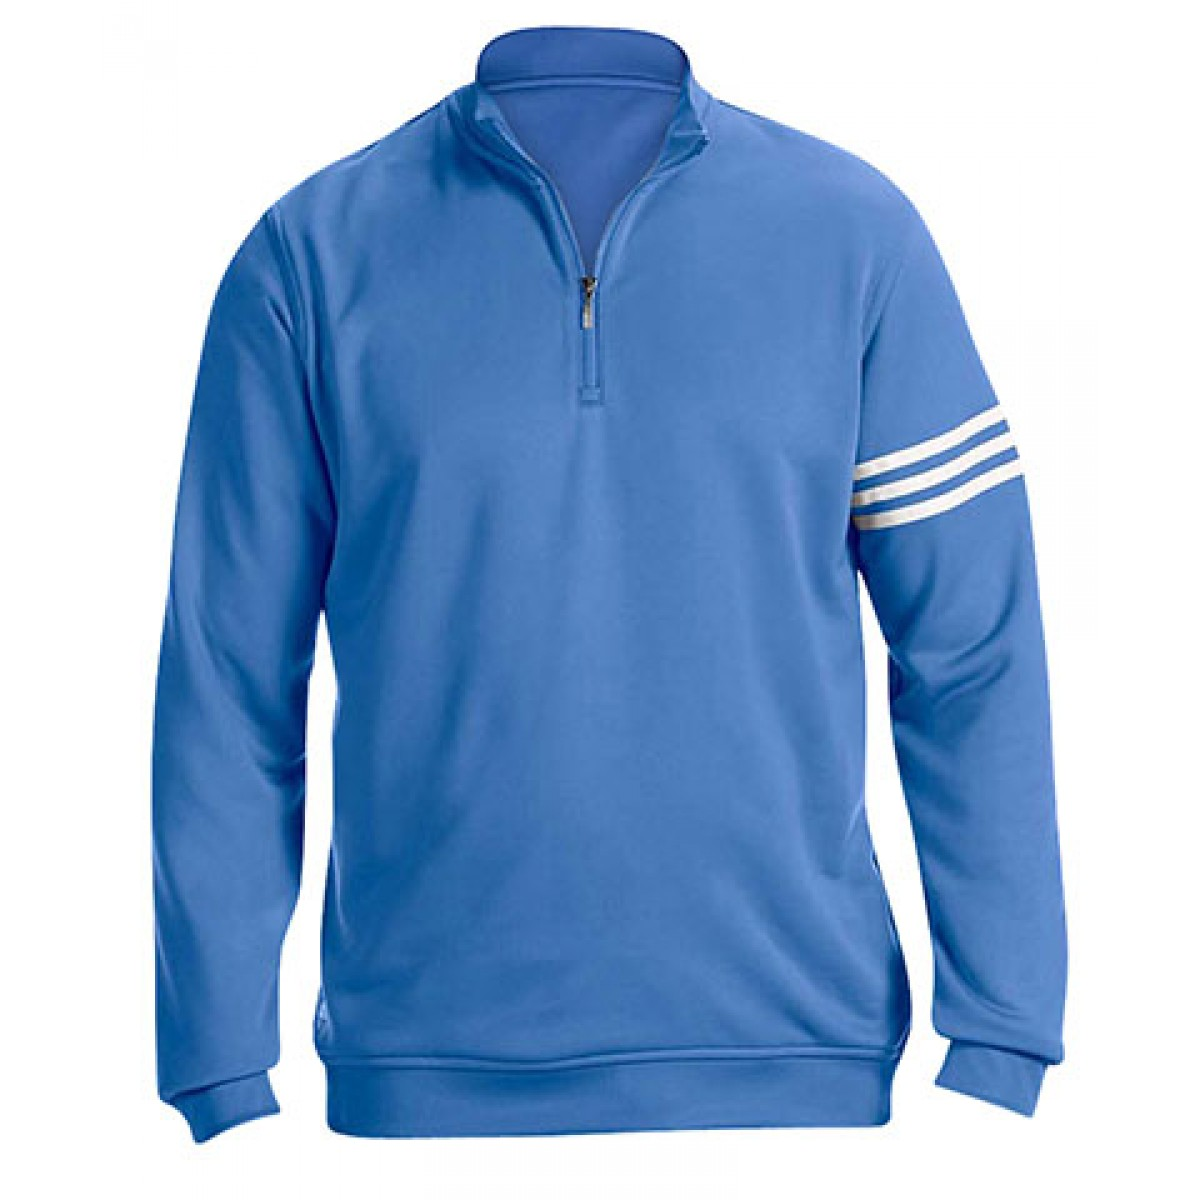 Adidas Golf Men's ClimaLite® 3-Stripes Pullover-Blue-M